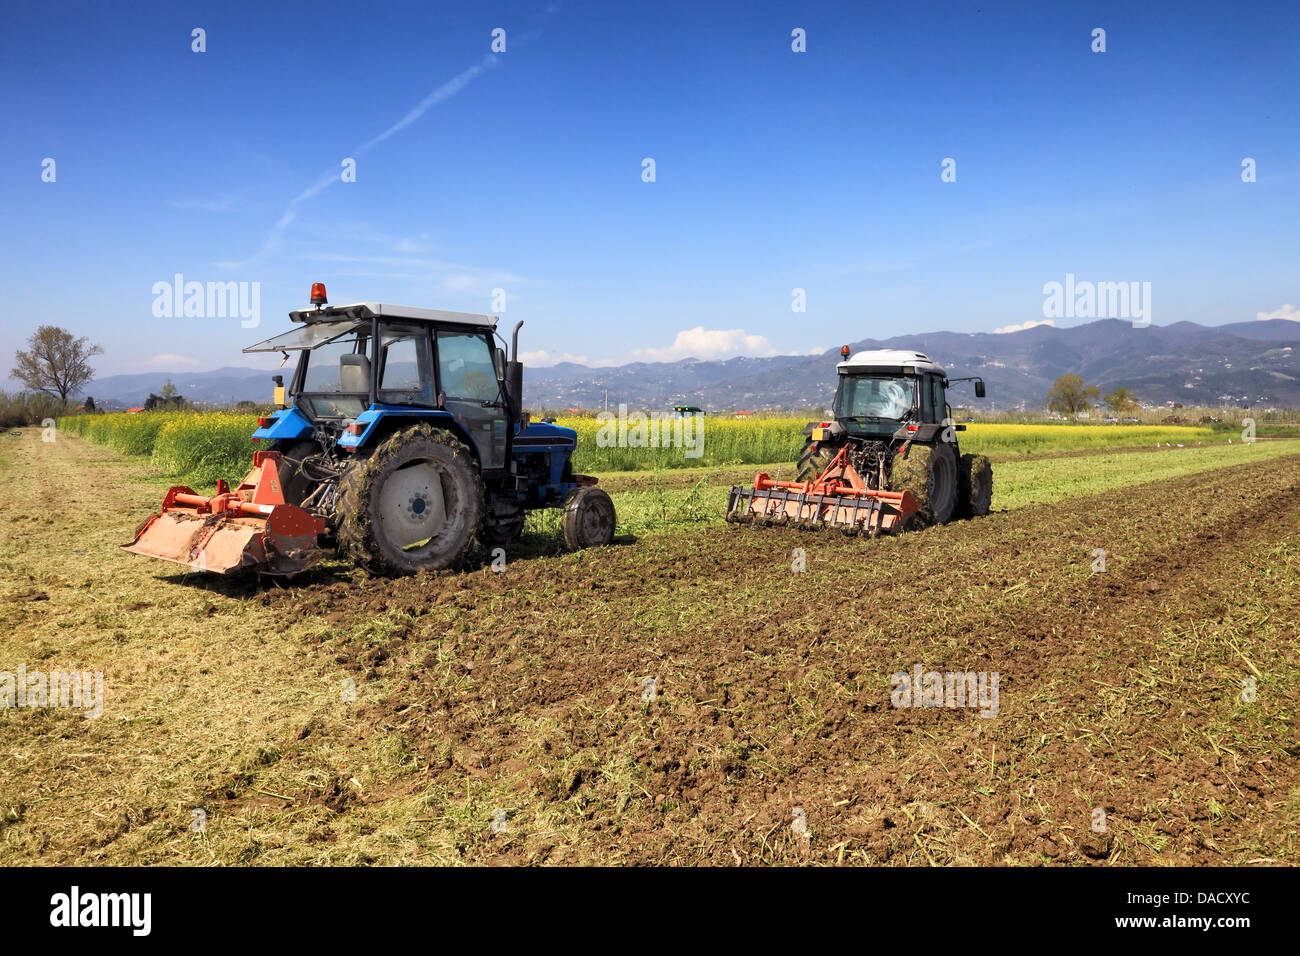 agriculture concept, tractors plowing a field - Stock Image